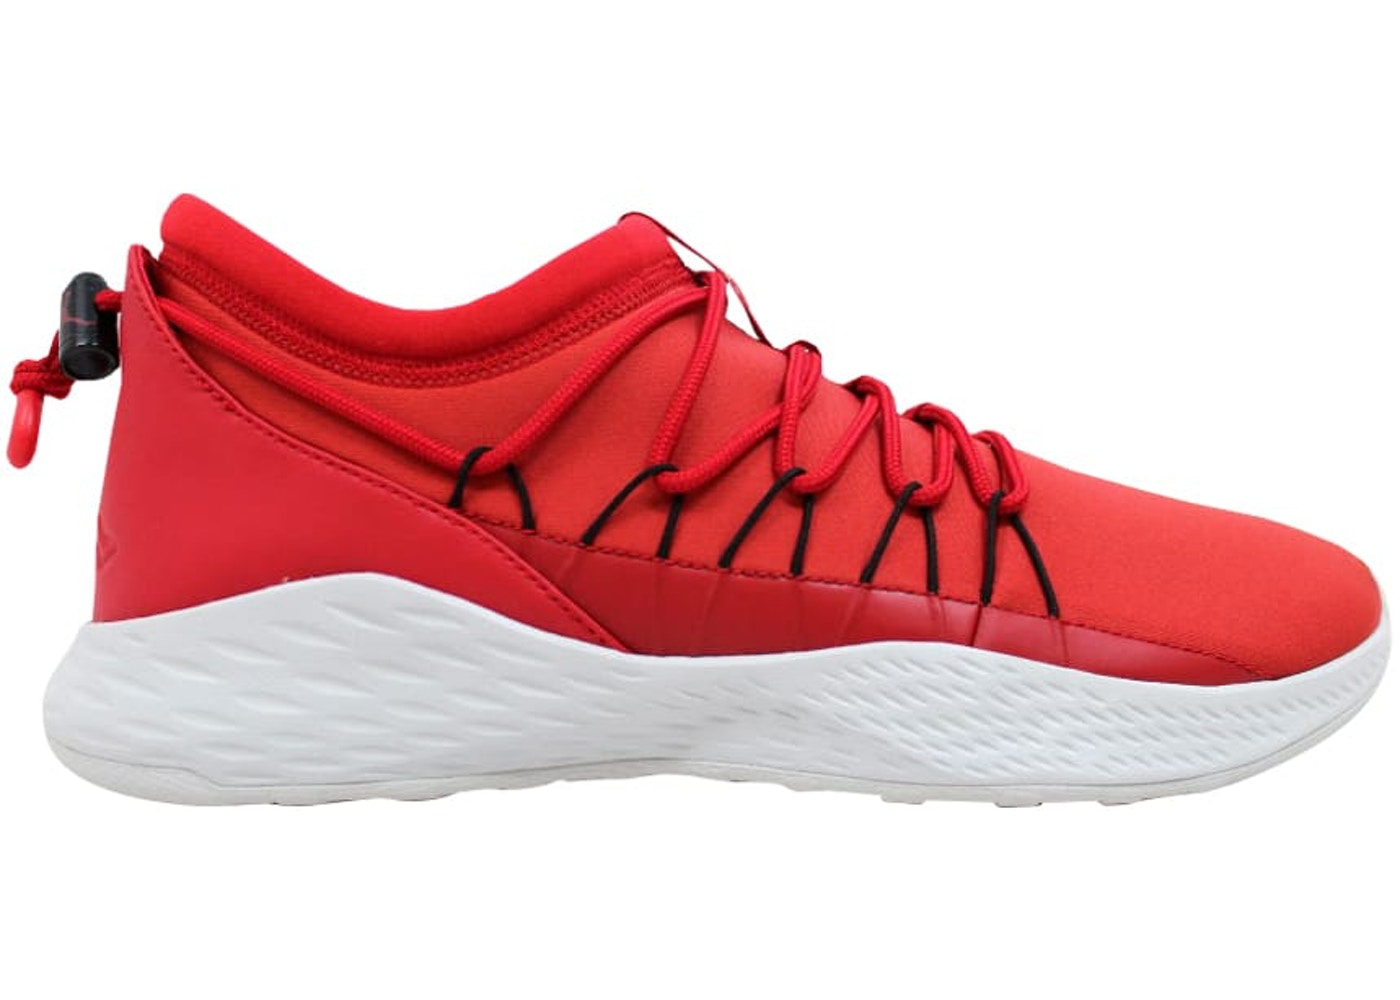 d19a448d316 Sell. or Ask. Size: 10. View All Bids. Air Jordan Formula 23 Toggle Gym Red/ Black-Pure Platinum